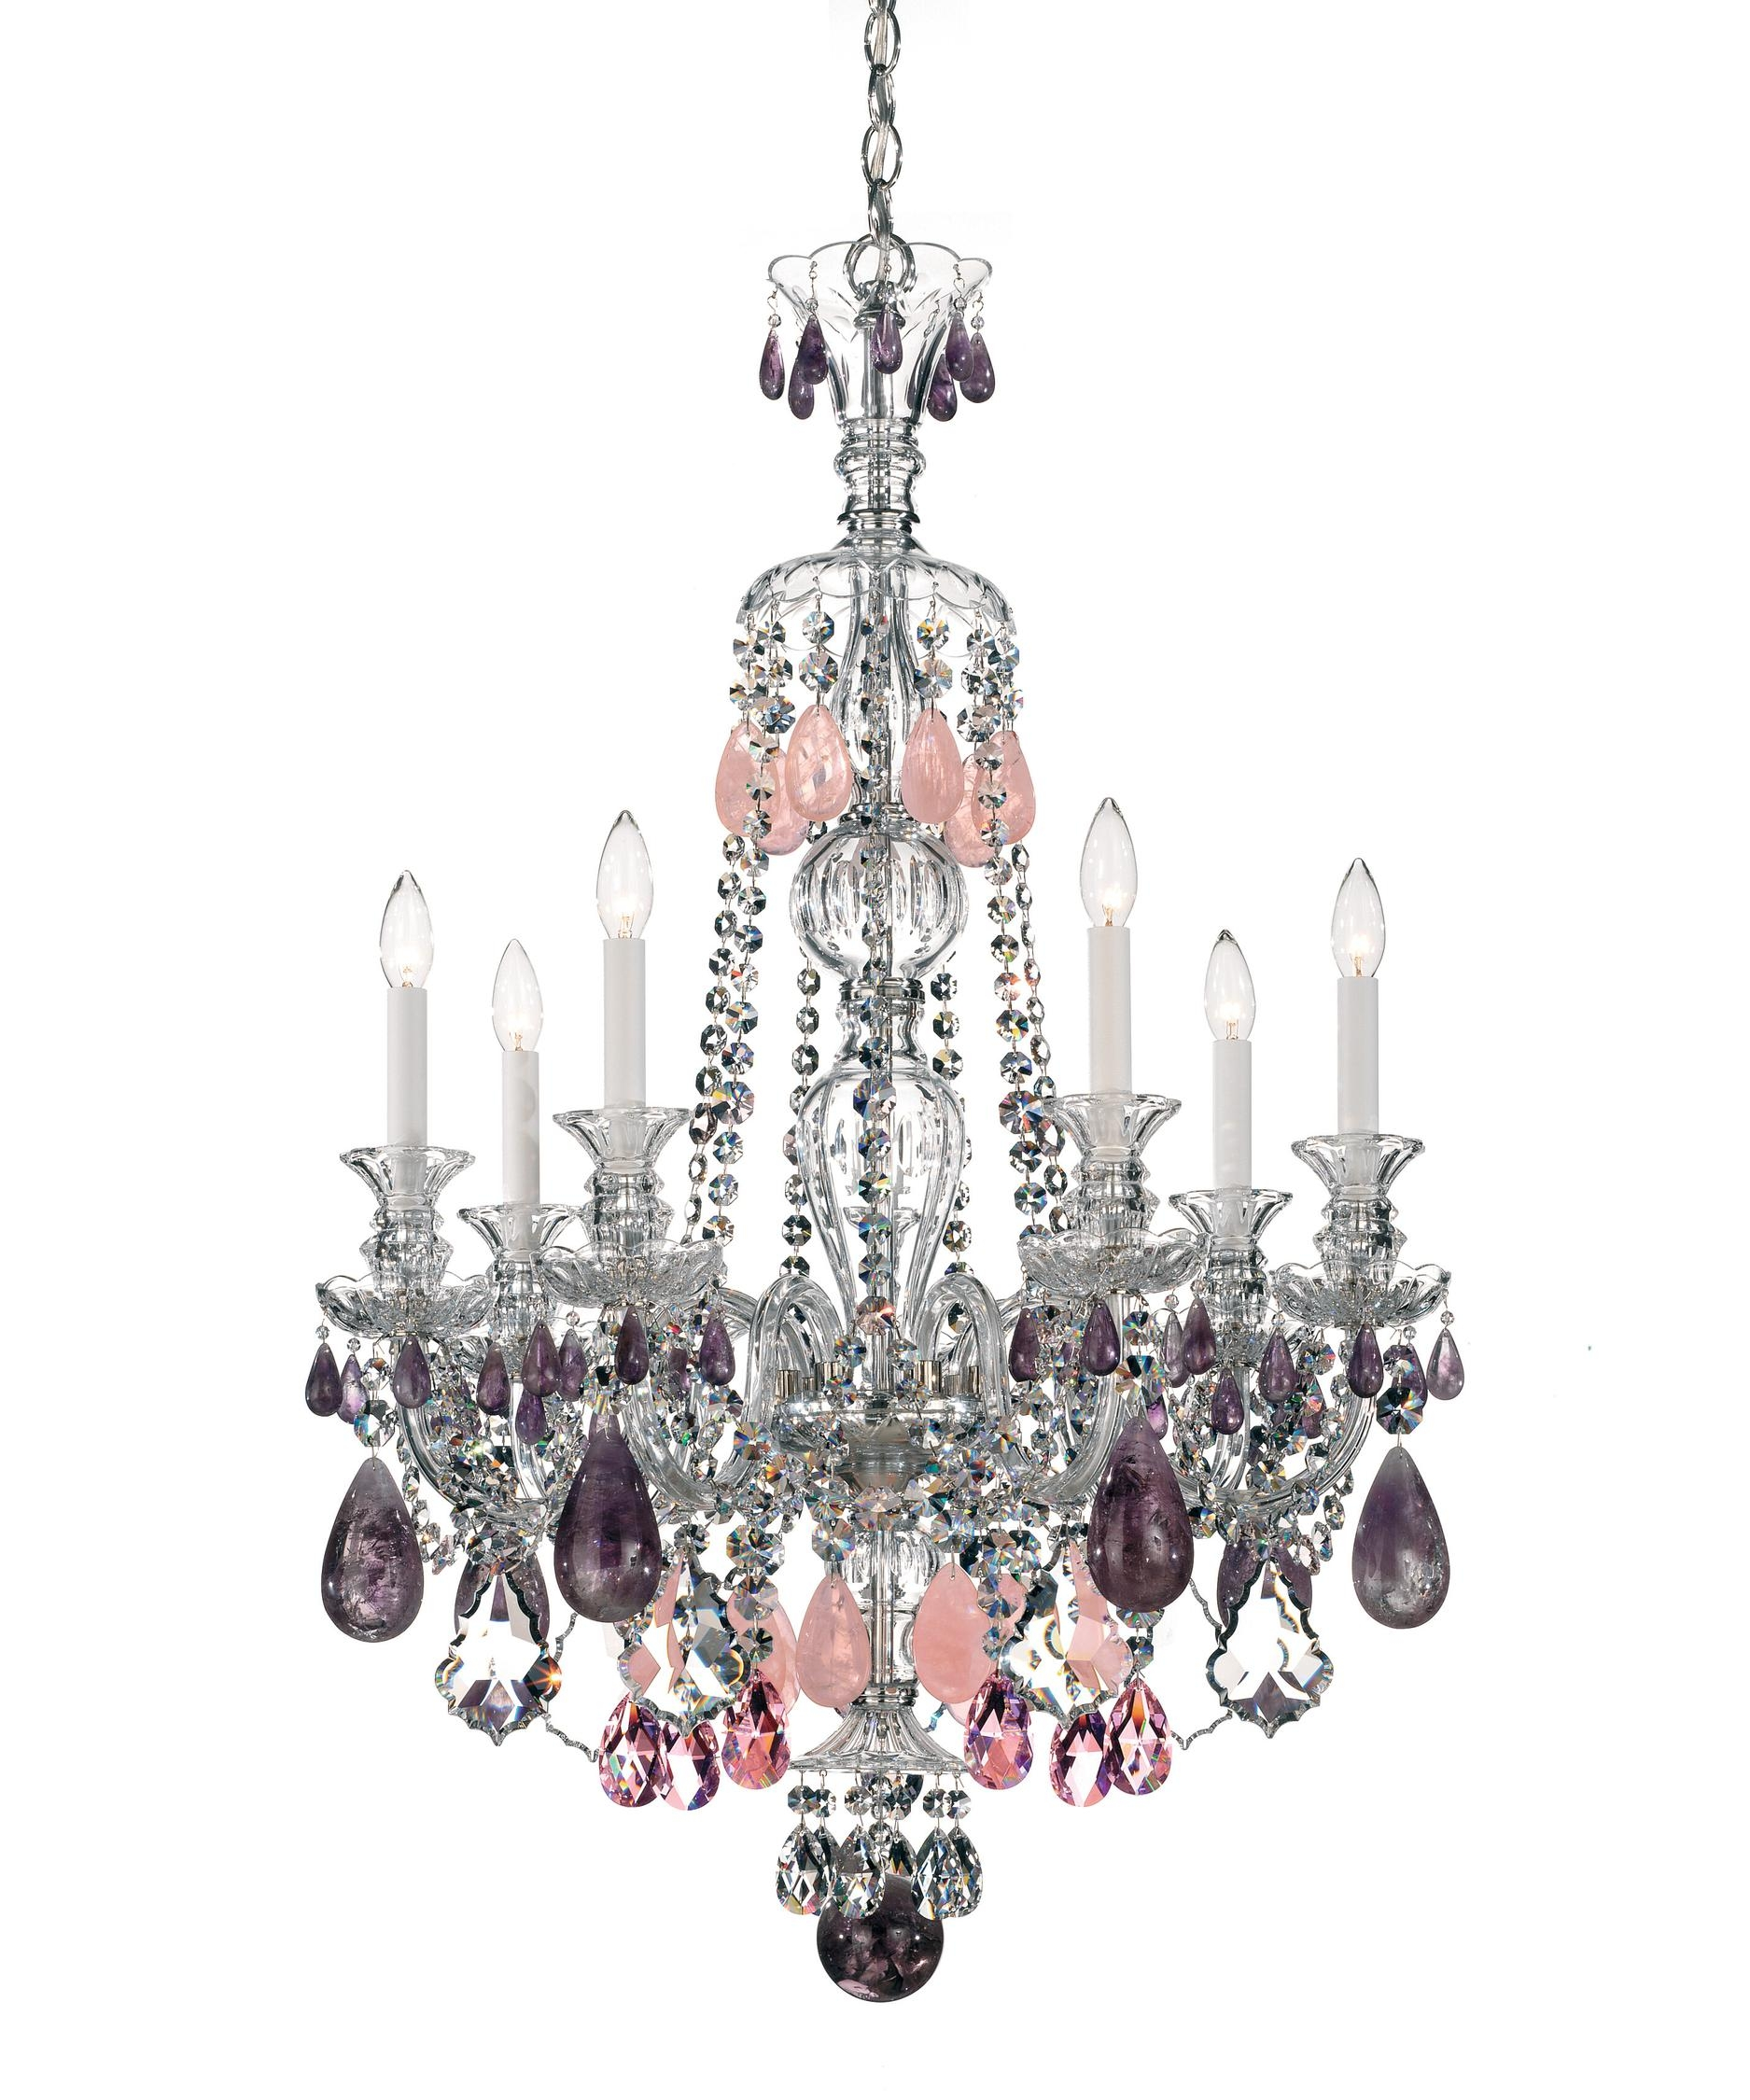 Schonbek 5506 Hamilton Rock Crystal 26 Inch Wide 7 Light Within 7 Light Chandeliers (Image 20 of 25)